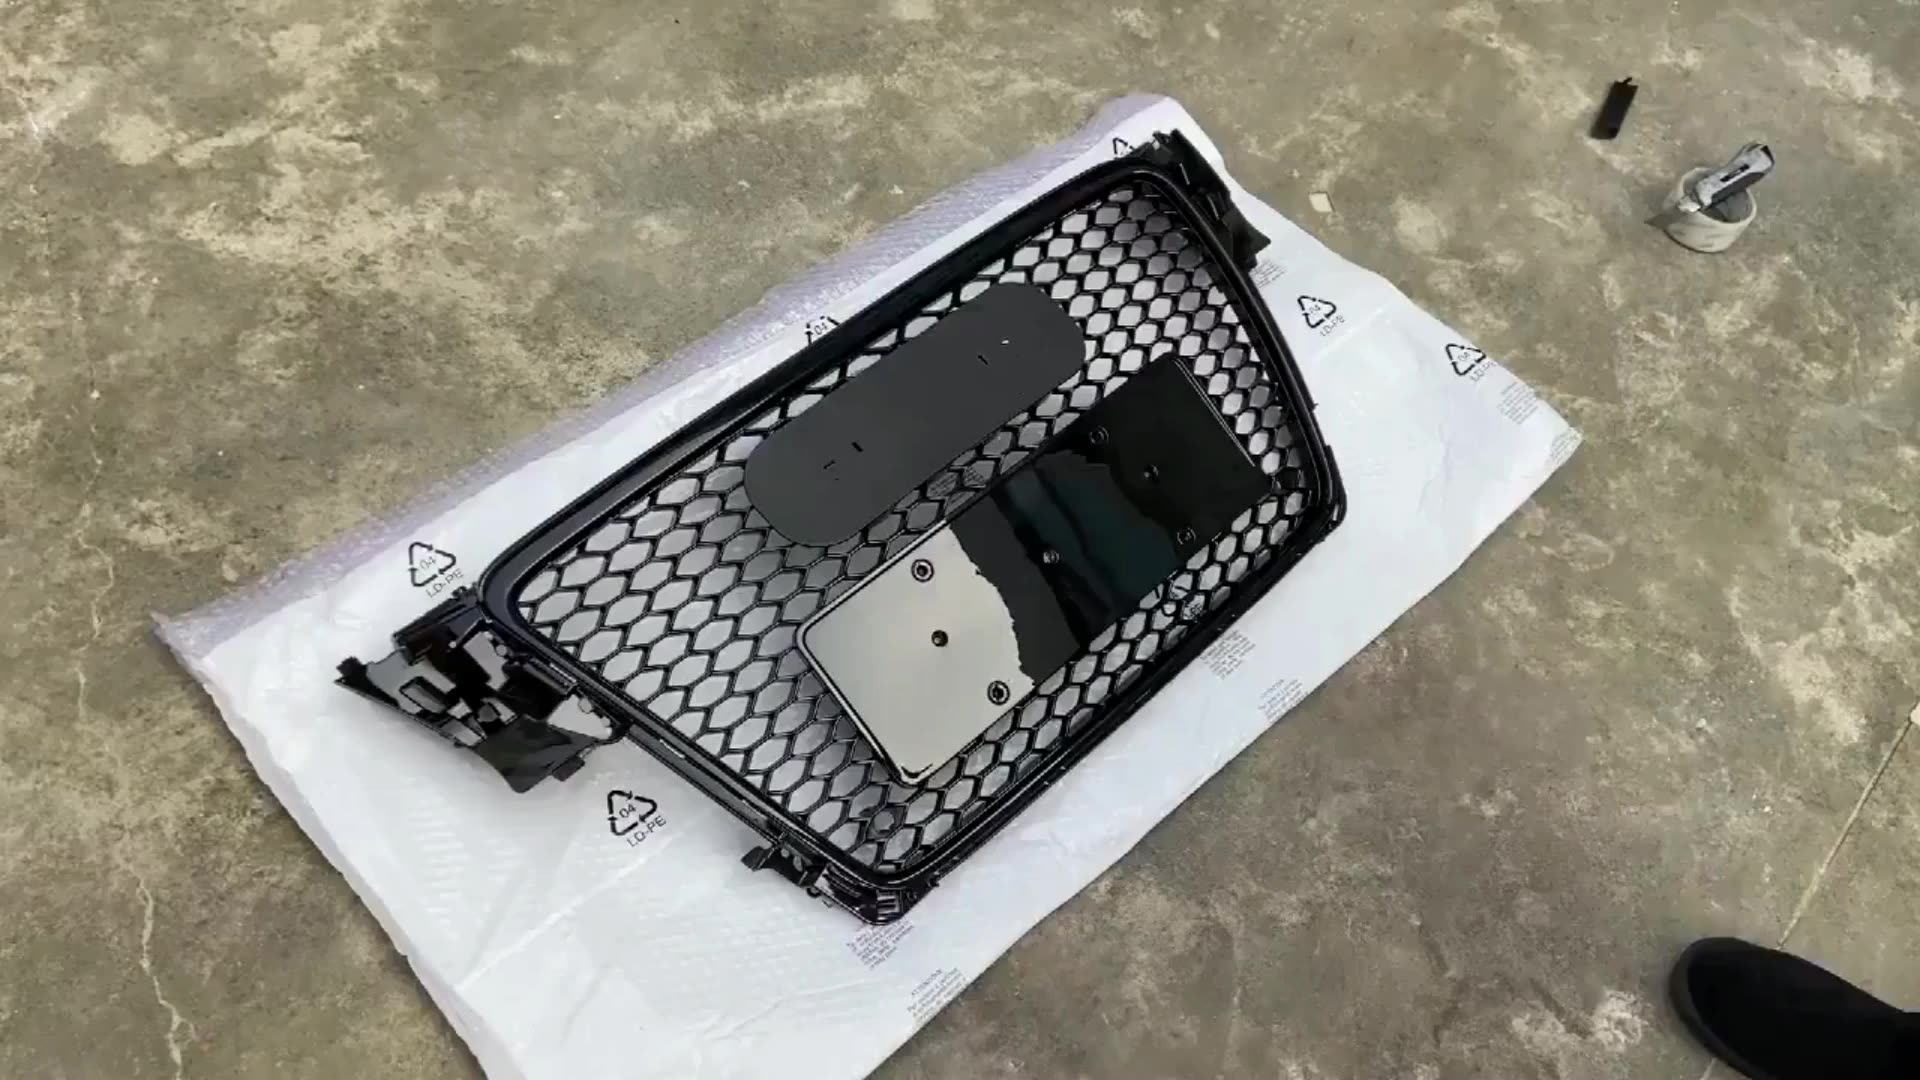 Honeycomb Style Front Grille For Audi A3 2017 2018 2019 2020 Upgrade Audi RS3 Mesh Grill With Silvery quattro